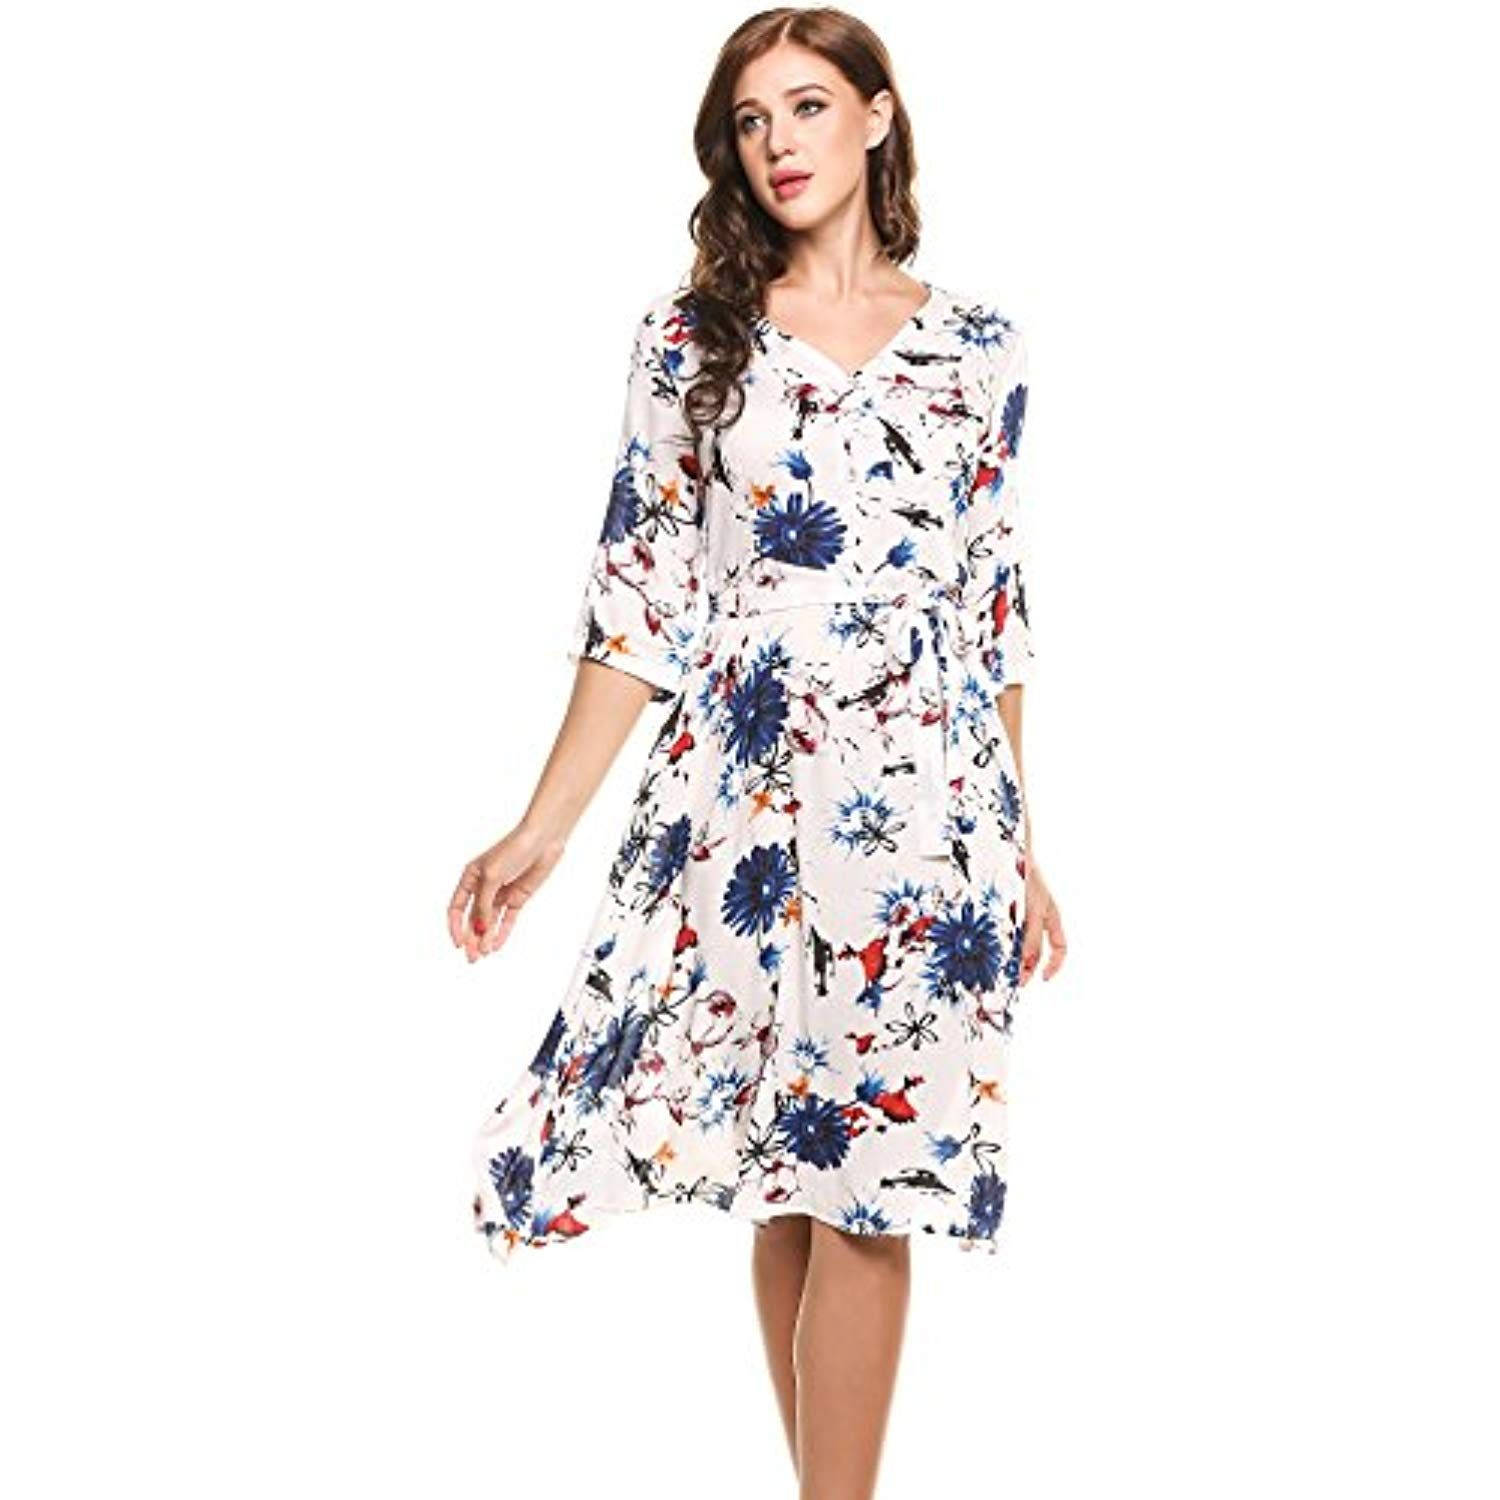 Women S Casual V Neck 3 4 Sleeves Floral And Leaves Print Hawaiian Dress Want Additional Info Printed Casual Dresses Elegant Dresses For Women Womens Dresses [ 1500 x 1500 Pixel ]